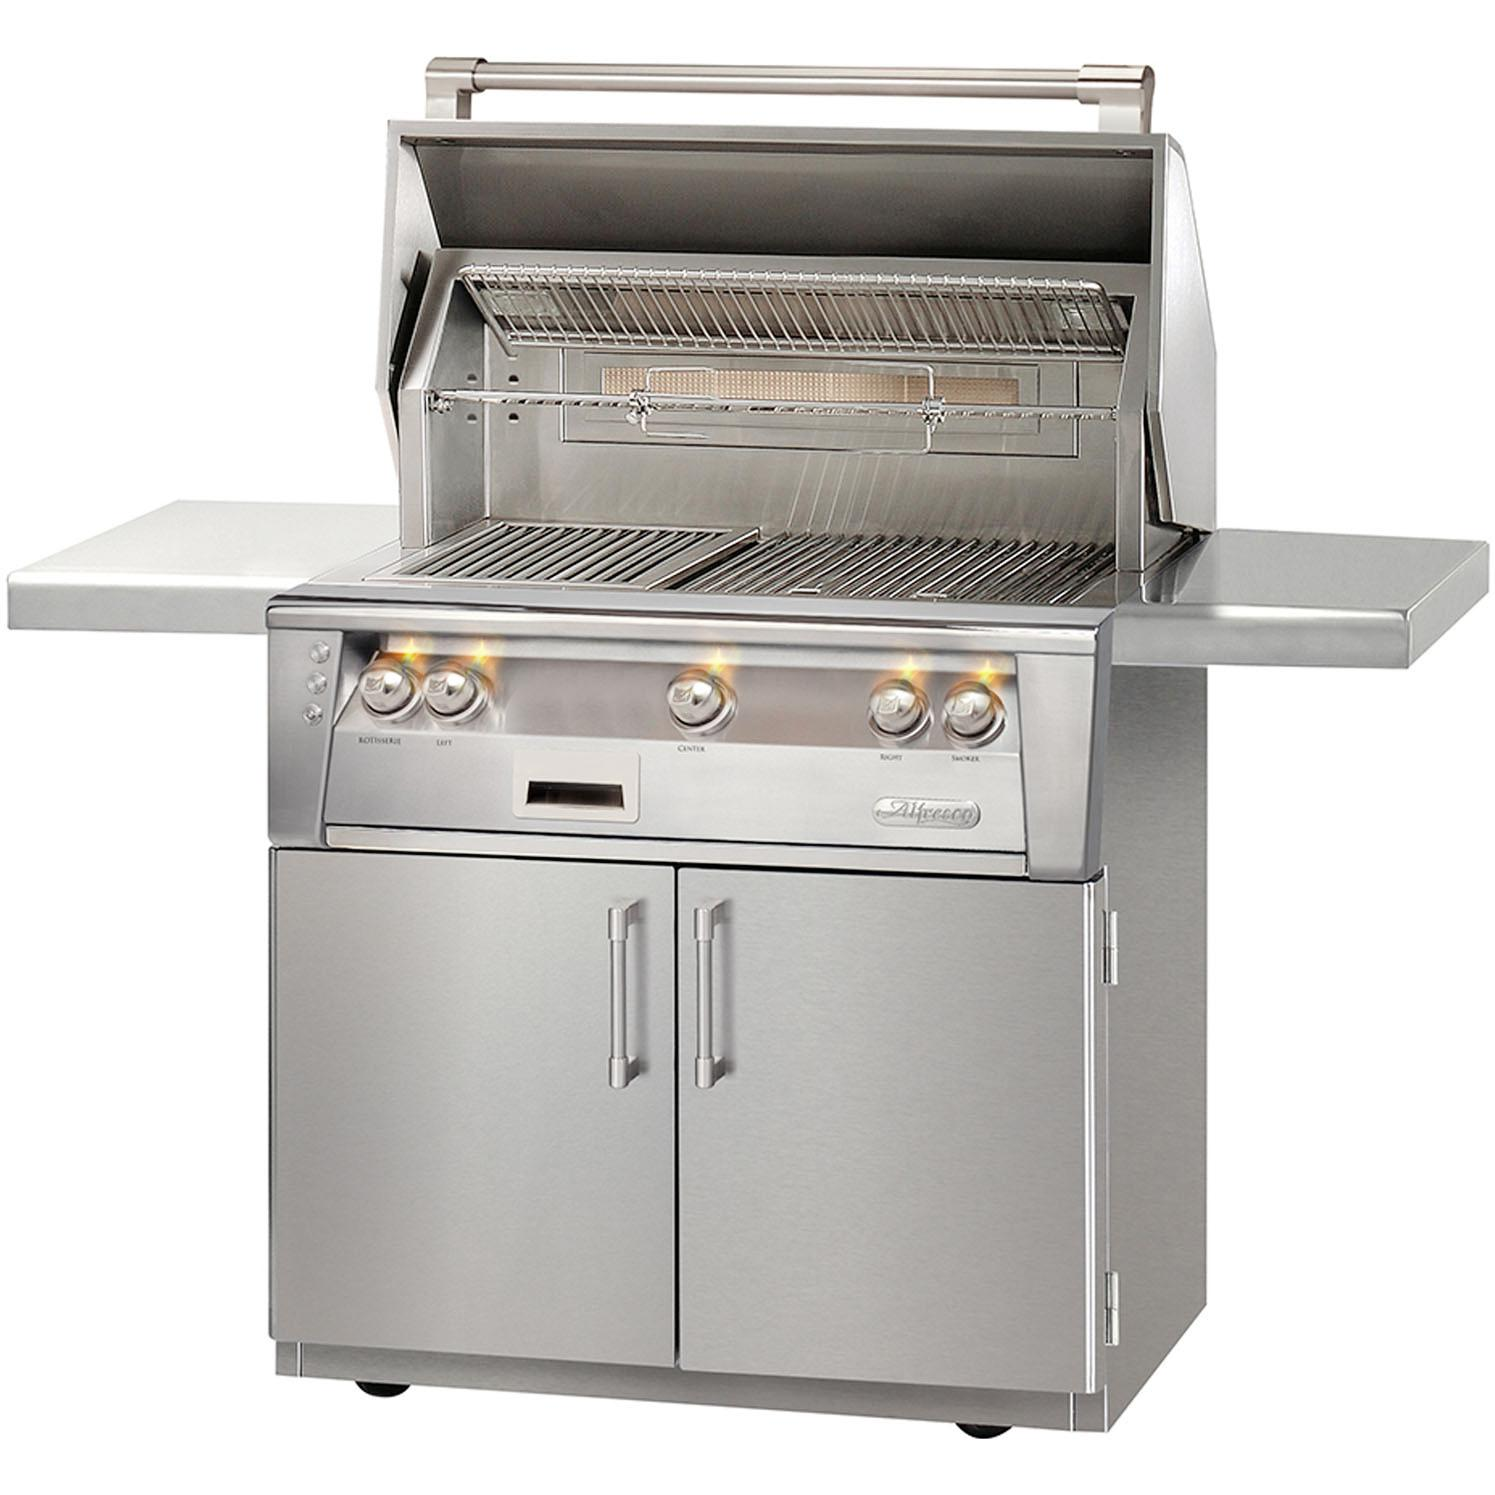 Alfresco LXE 36-Inch Propane Gas Grill On Cart With Sear Zone And Rotisserie - ALXE-36SZC-LP 2911878